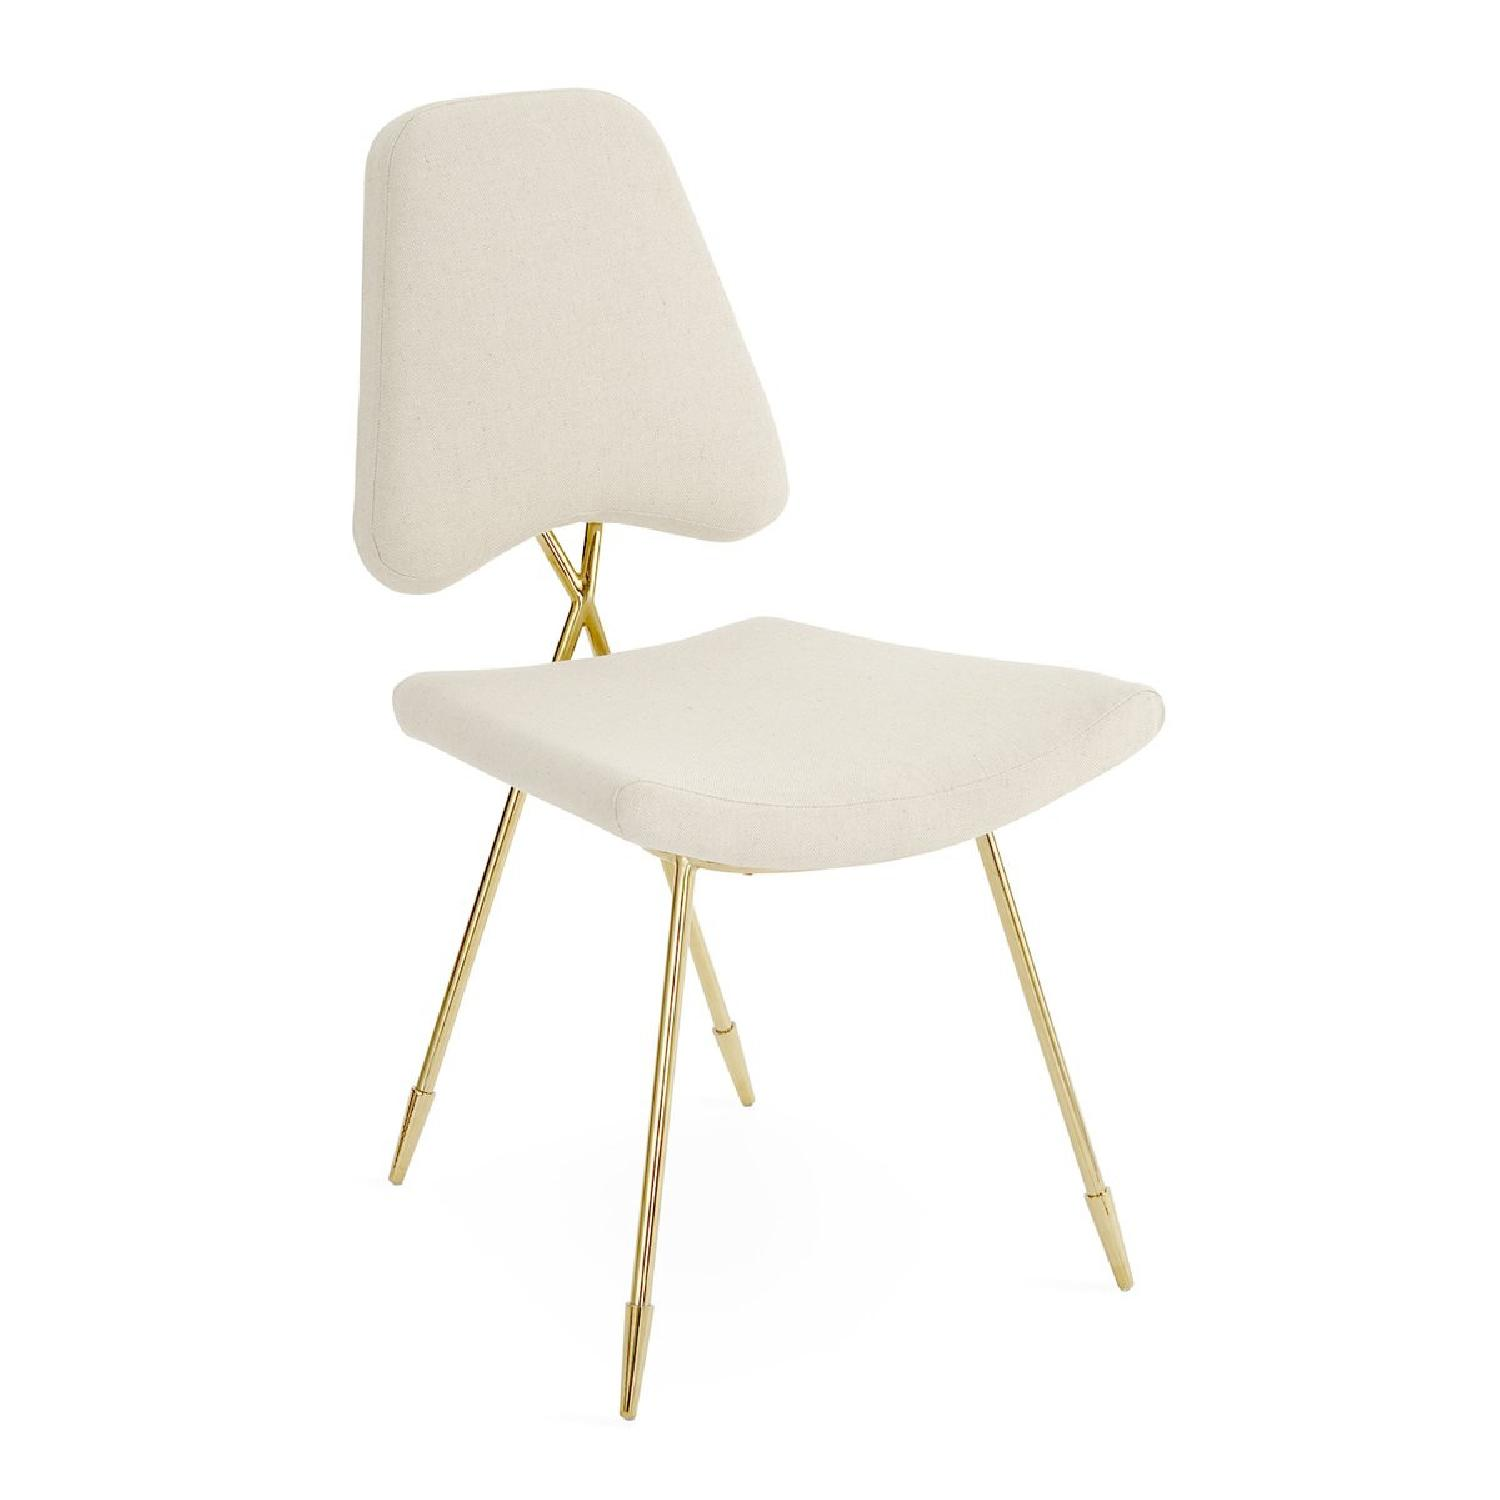 Jonathan Adler Maxime Dining Chairs - image-4